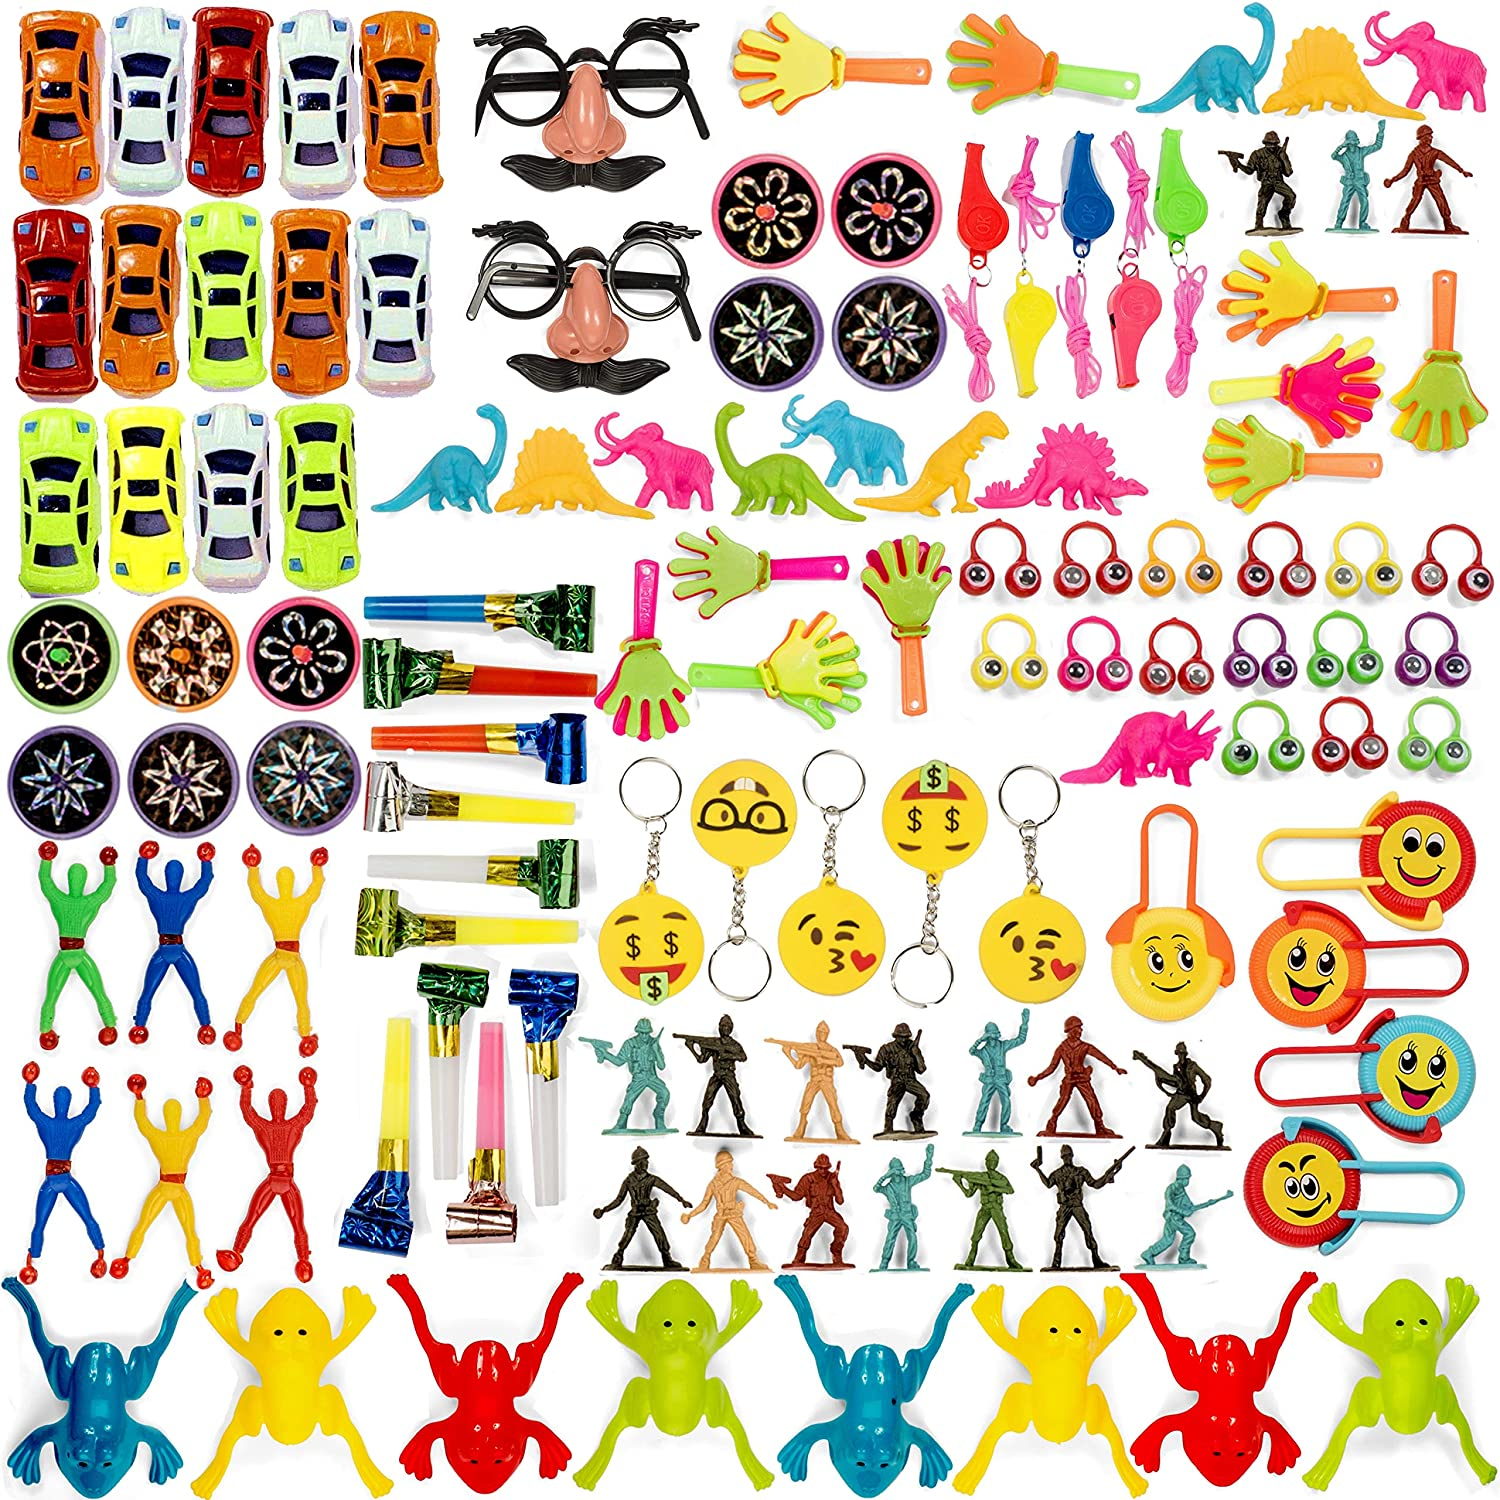 Bulk Toy Assortment 120 Piece Party Favors for Kids Treasure Box Prizes for Classroom Pinata Filler Small Toys Goodie Bag Fillers